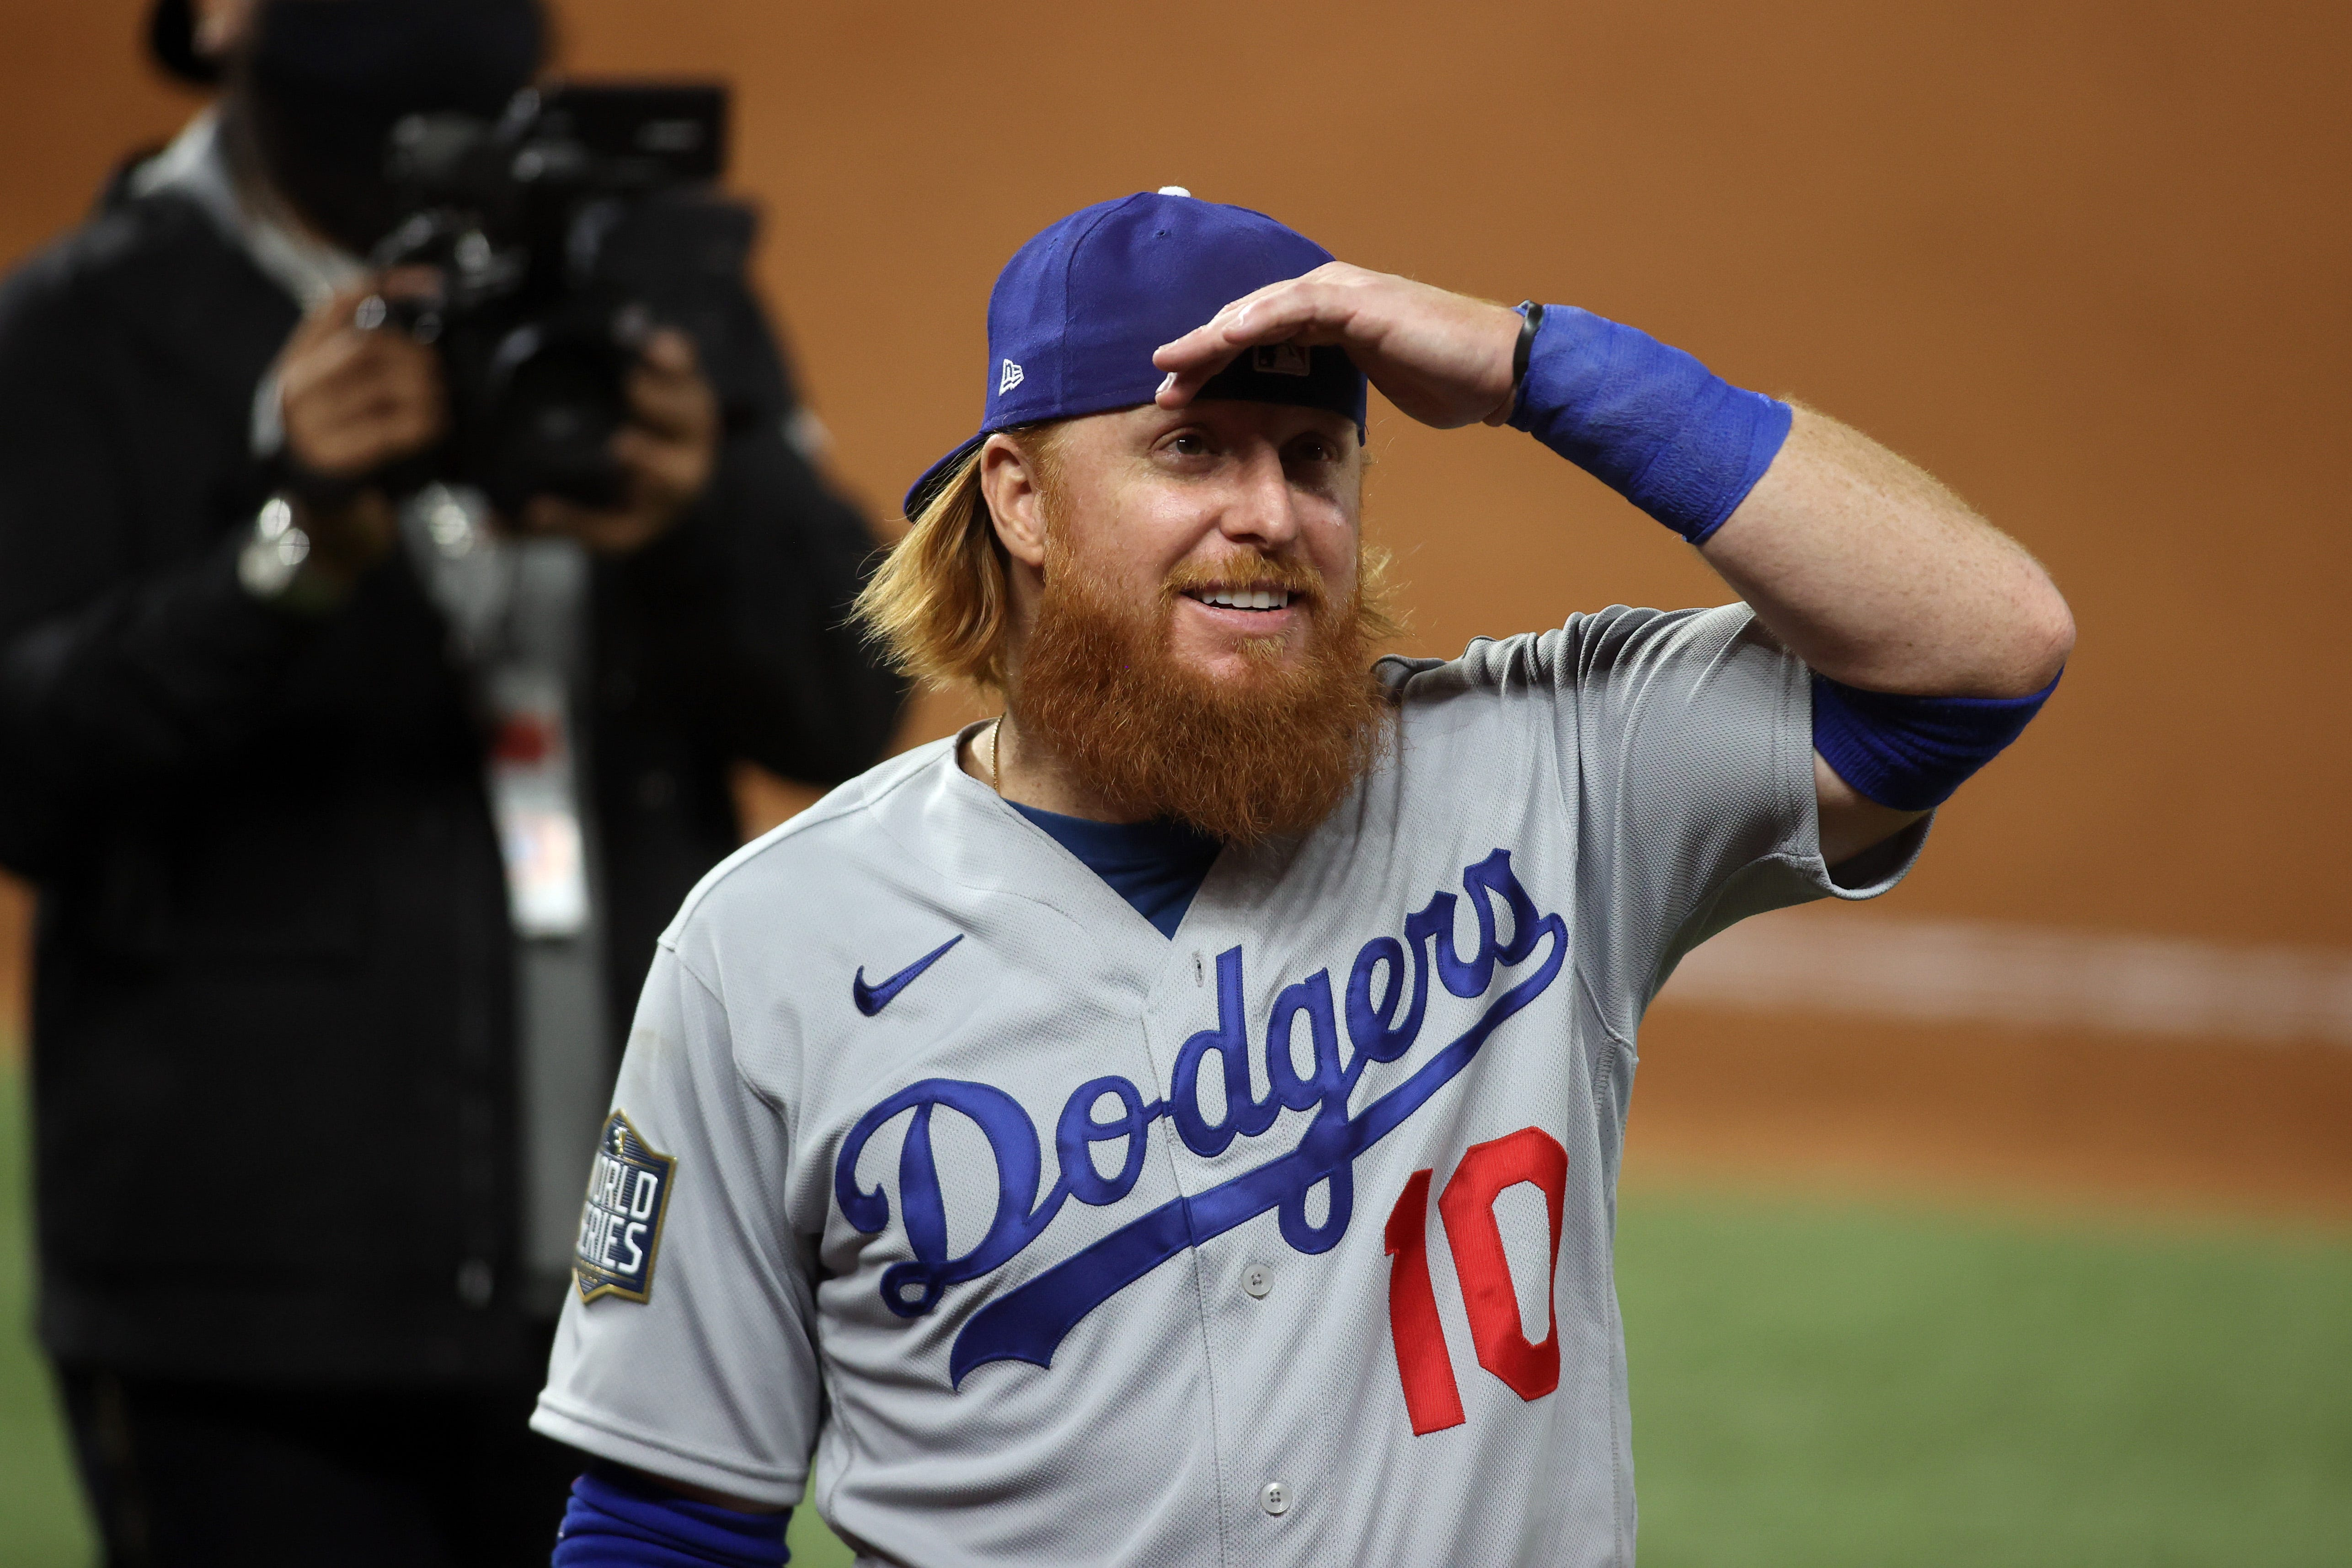 How to watch Dodgers vs. Rays: World Series Game 4 live stream, schedule, TV channel, start time